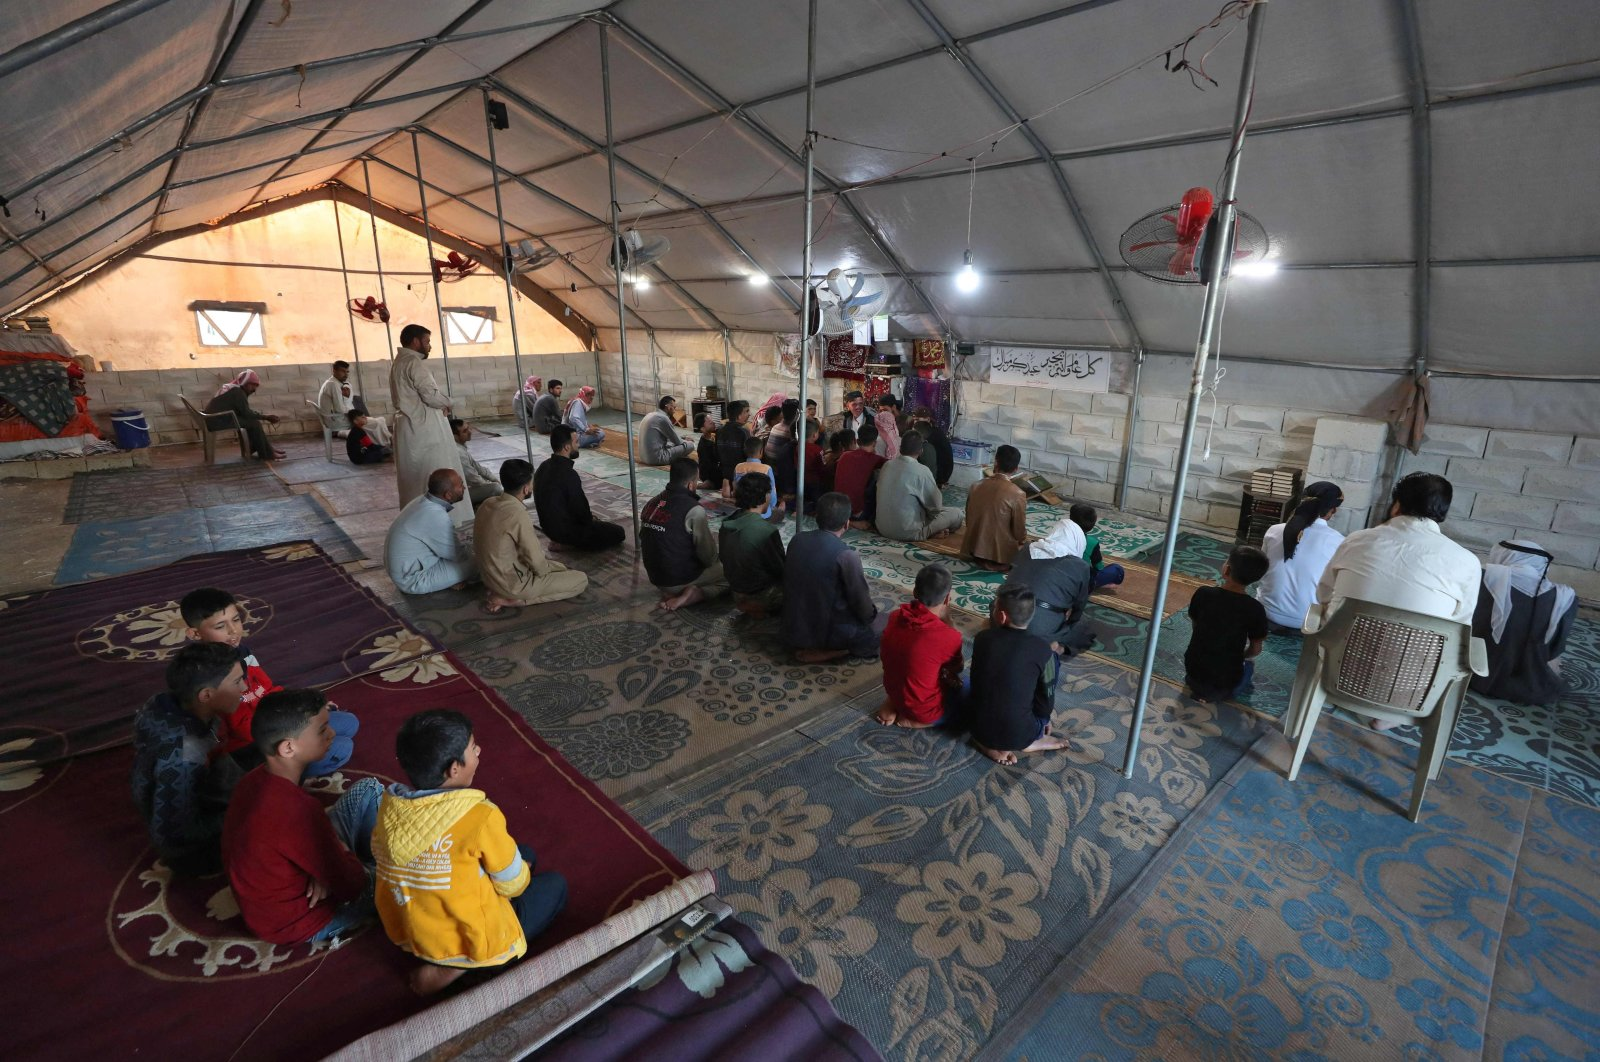 Displaced Syrians gather in a tent at the al-Tah camp for internally displaced persons (IDP) in Syria's northwestern province of Idlib, May 13, 2021. (AFP Photo)